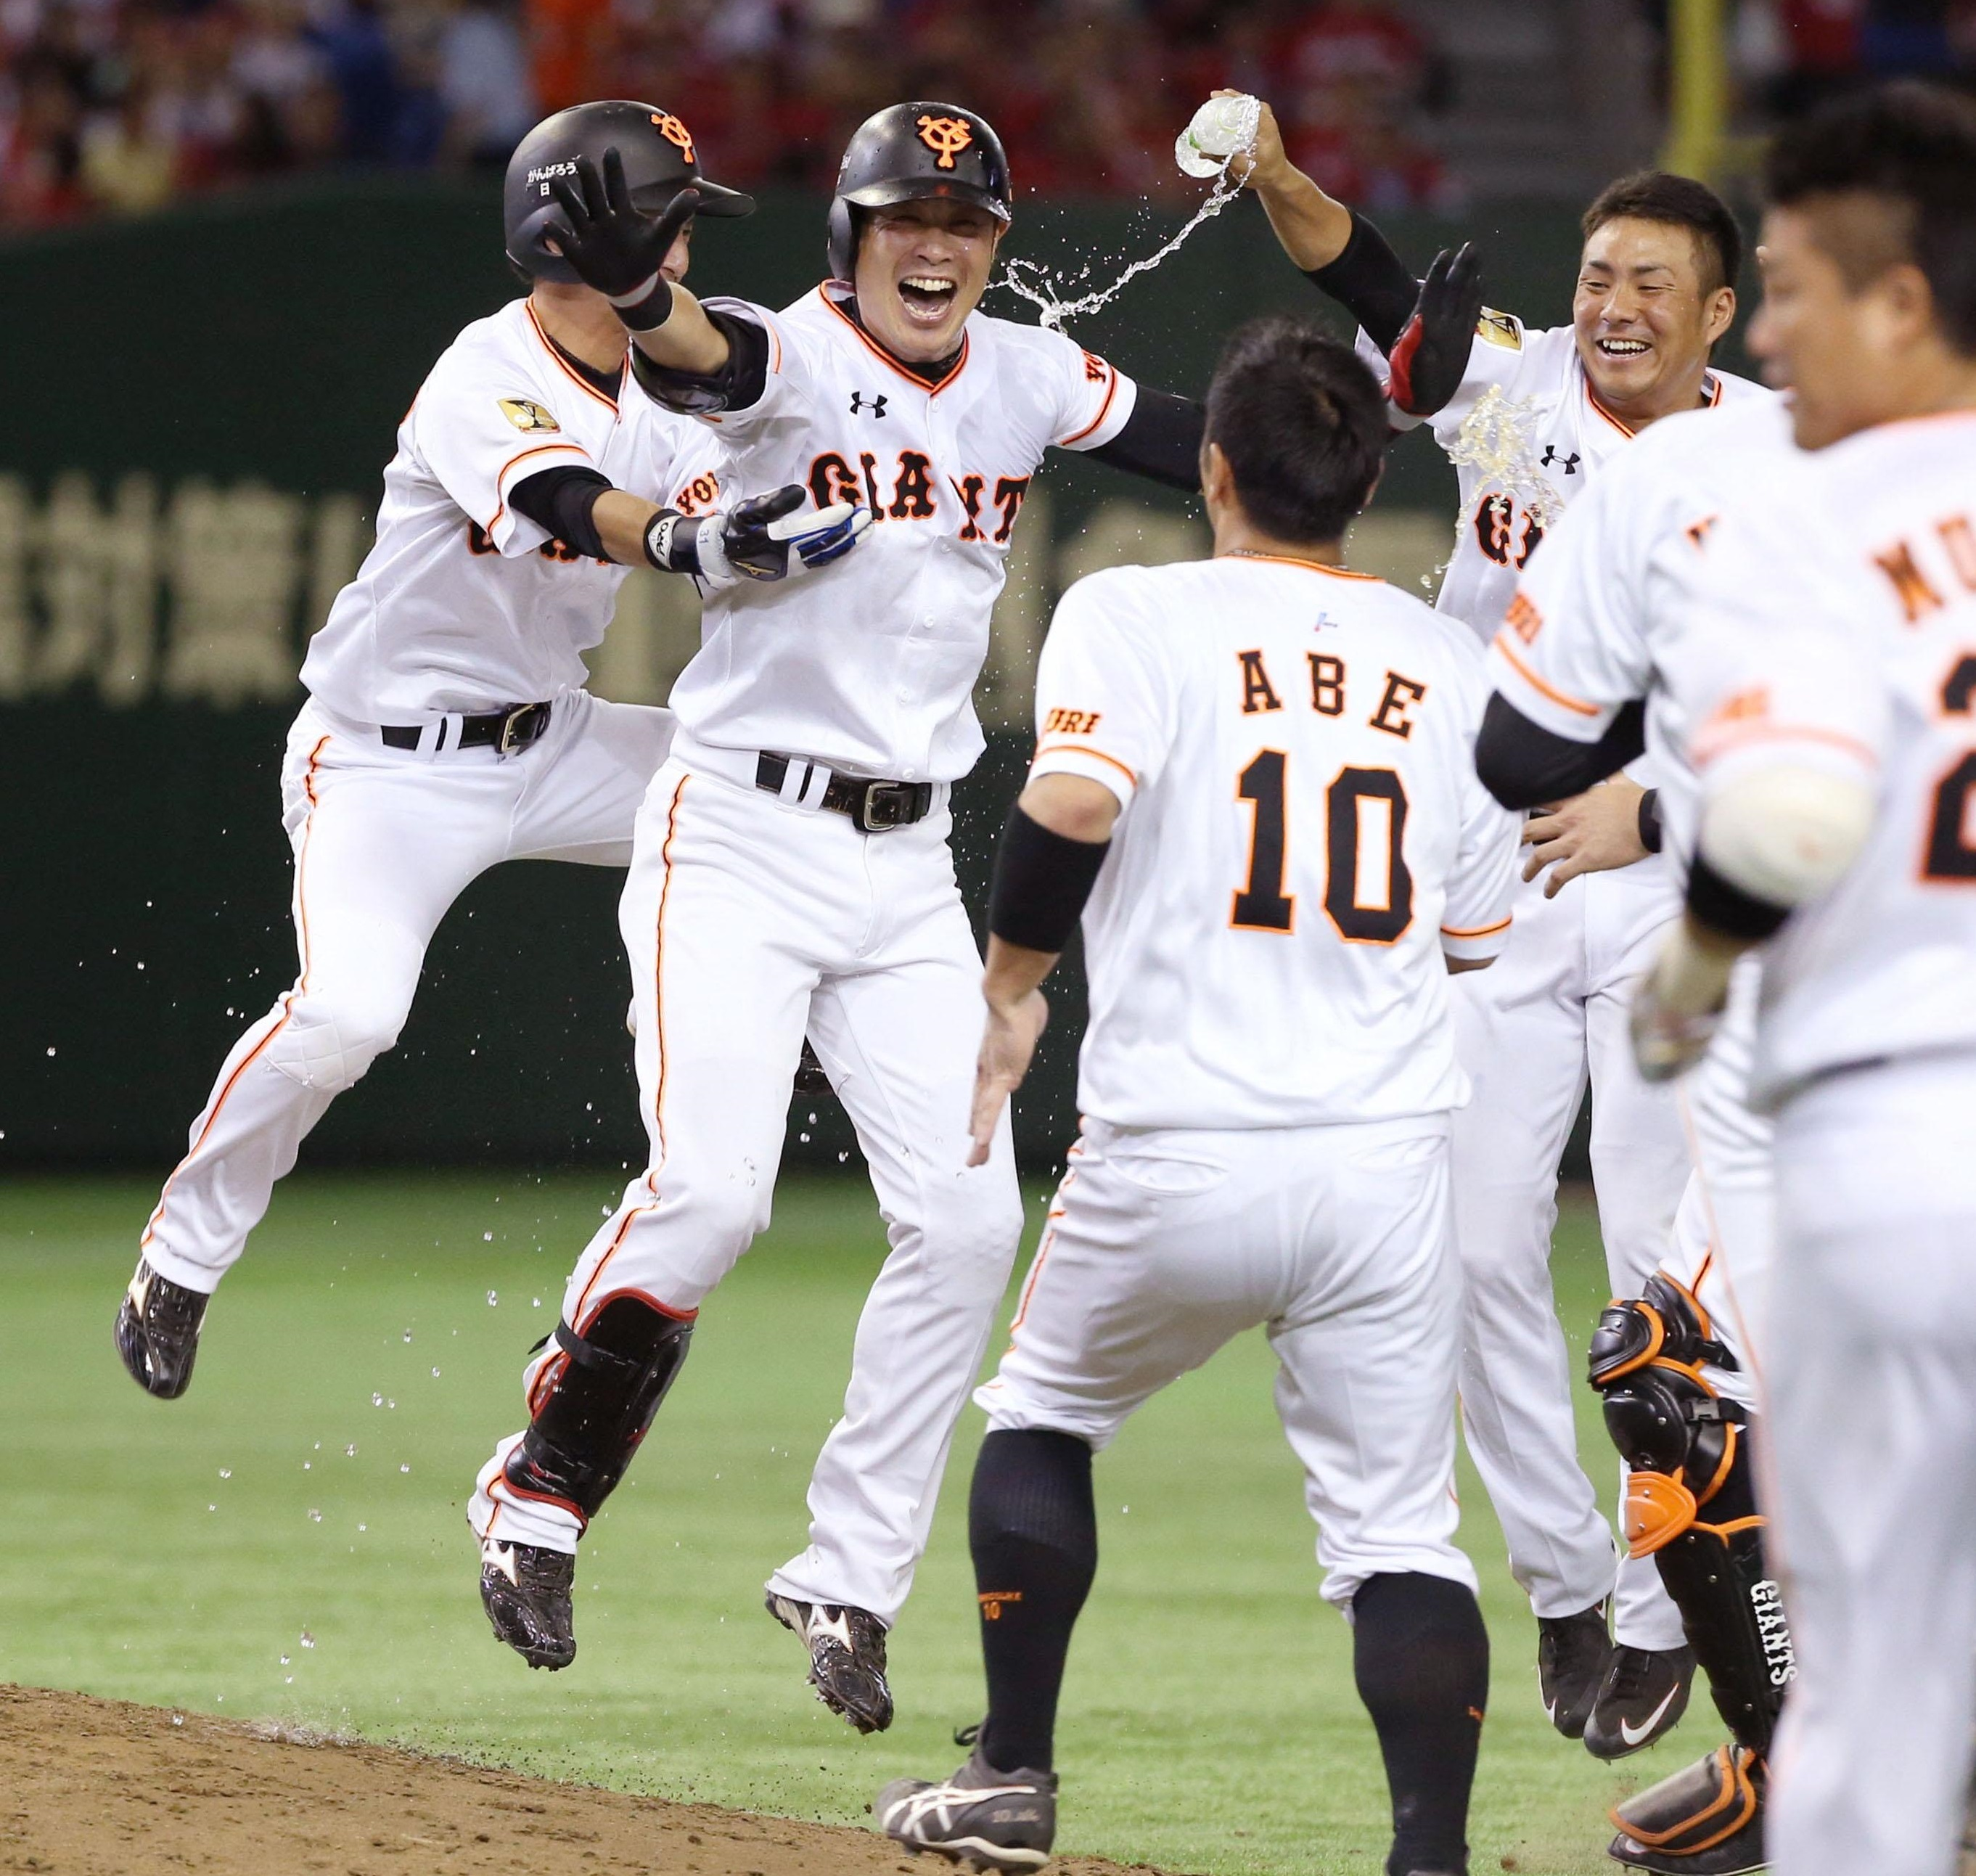 Yoshiyuki Kamei (second from left) and his Giants teammates celebrate their walk-off victory over the Carp on Tuesday night at Tokyo Dome. Kamei hit the game-winning sacrifice fly in Yomiuri's 2-1 triumph over Hiroshima. | KYODO